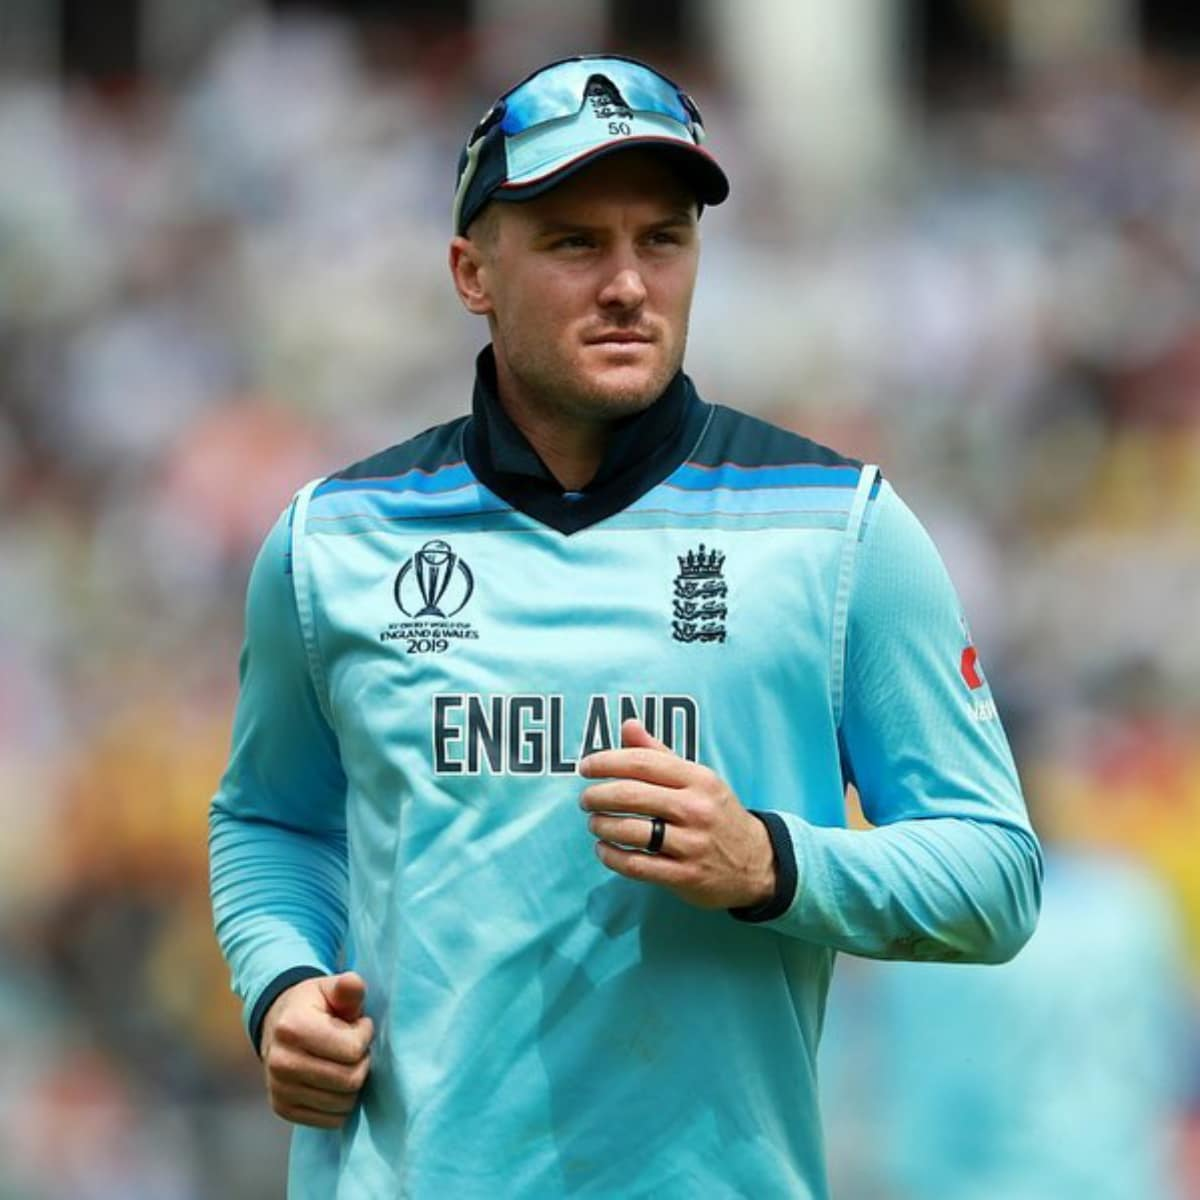 Jason roy determined to go back to cricket, even in the back of closed doorways